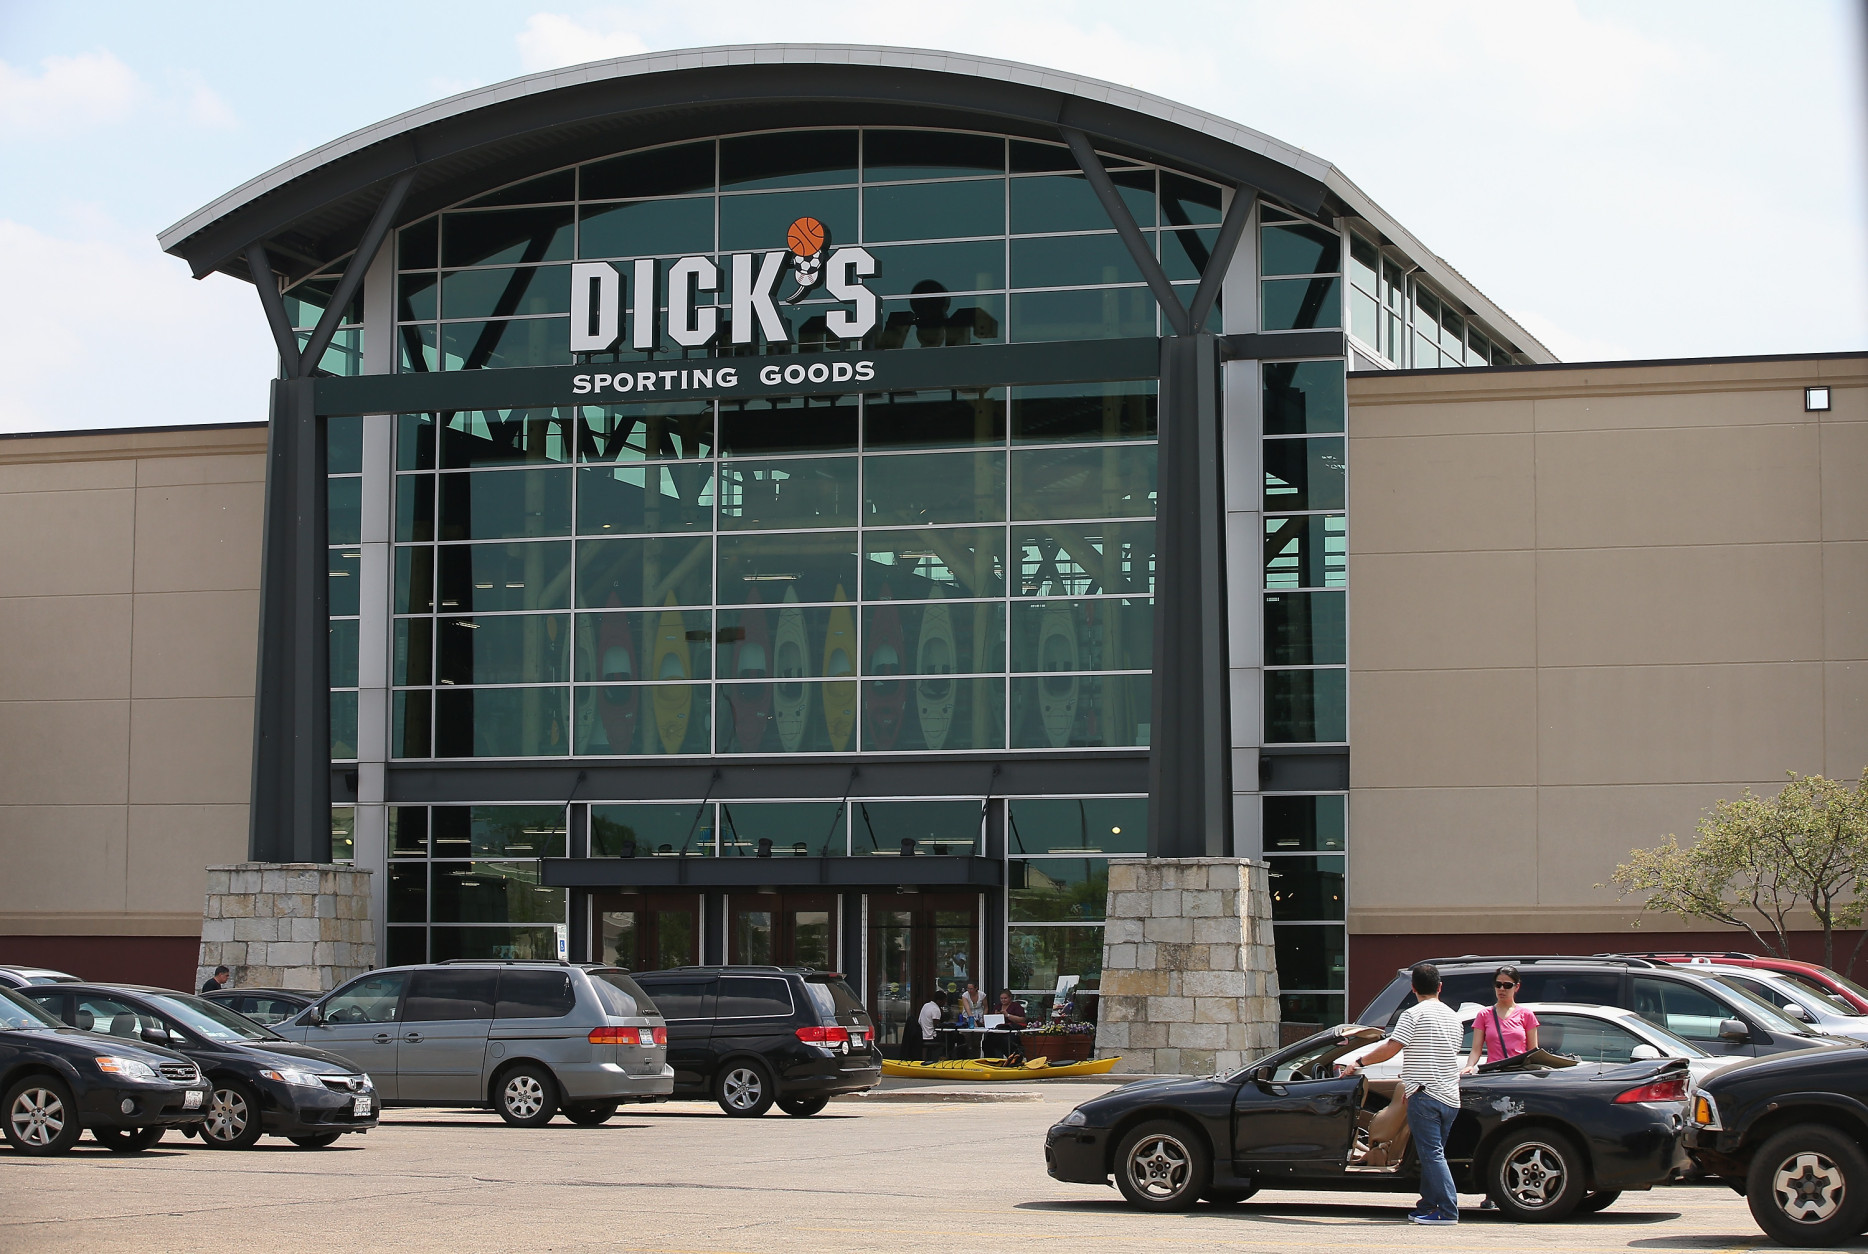 Pittsburgh-based Dick's Sporting Goods has been around since 1948. It has 645 stores nationwide.  (Photo by Scott Olson/Getty Images)